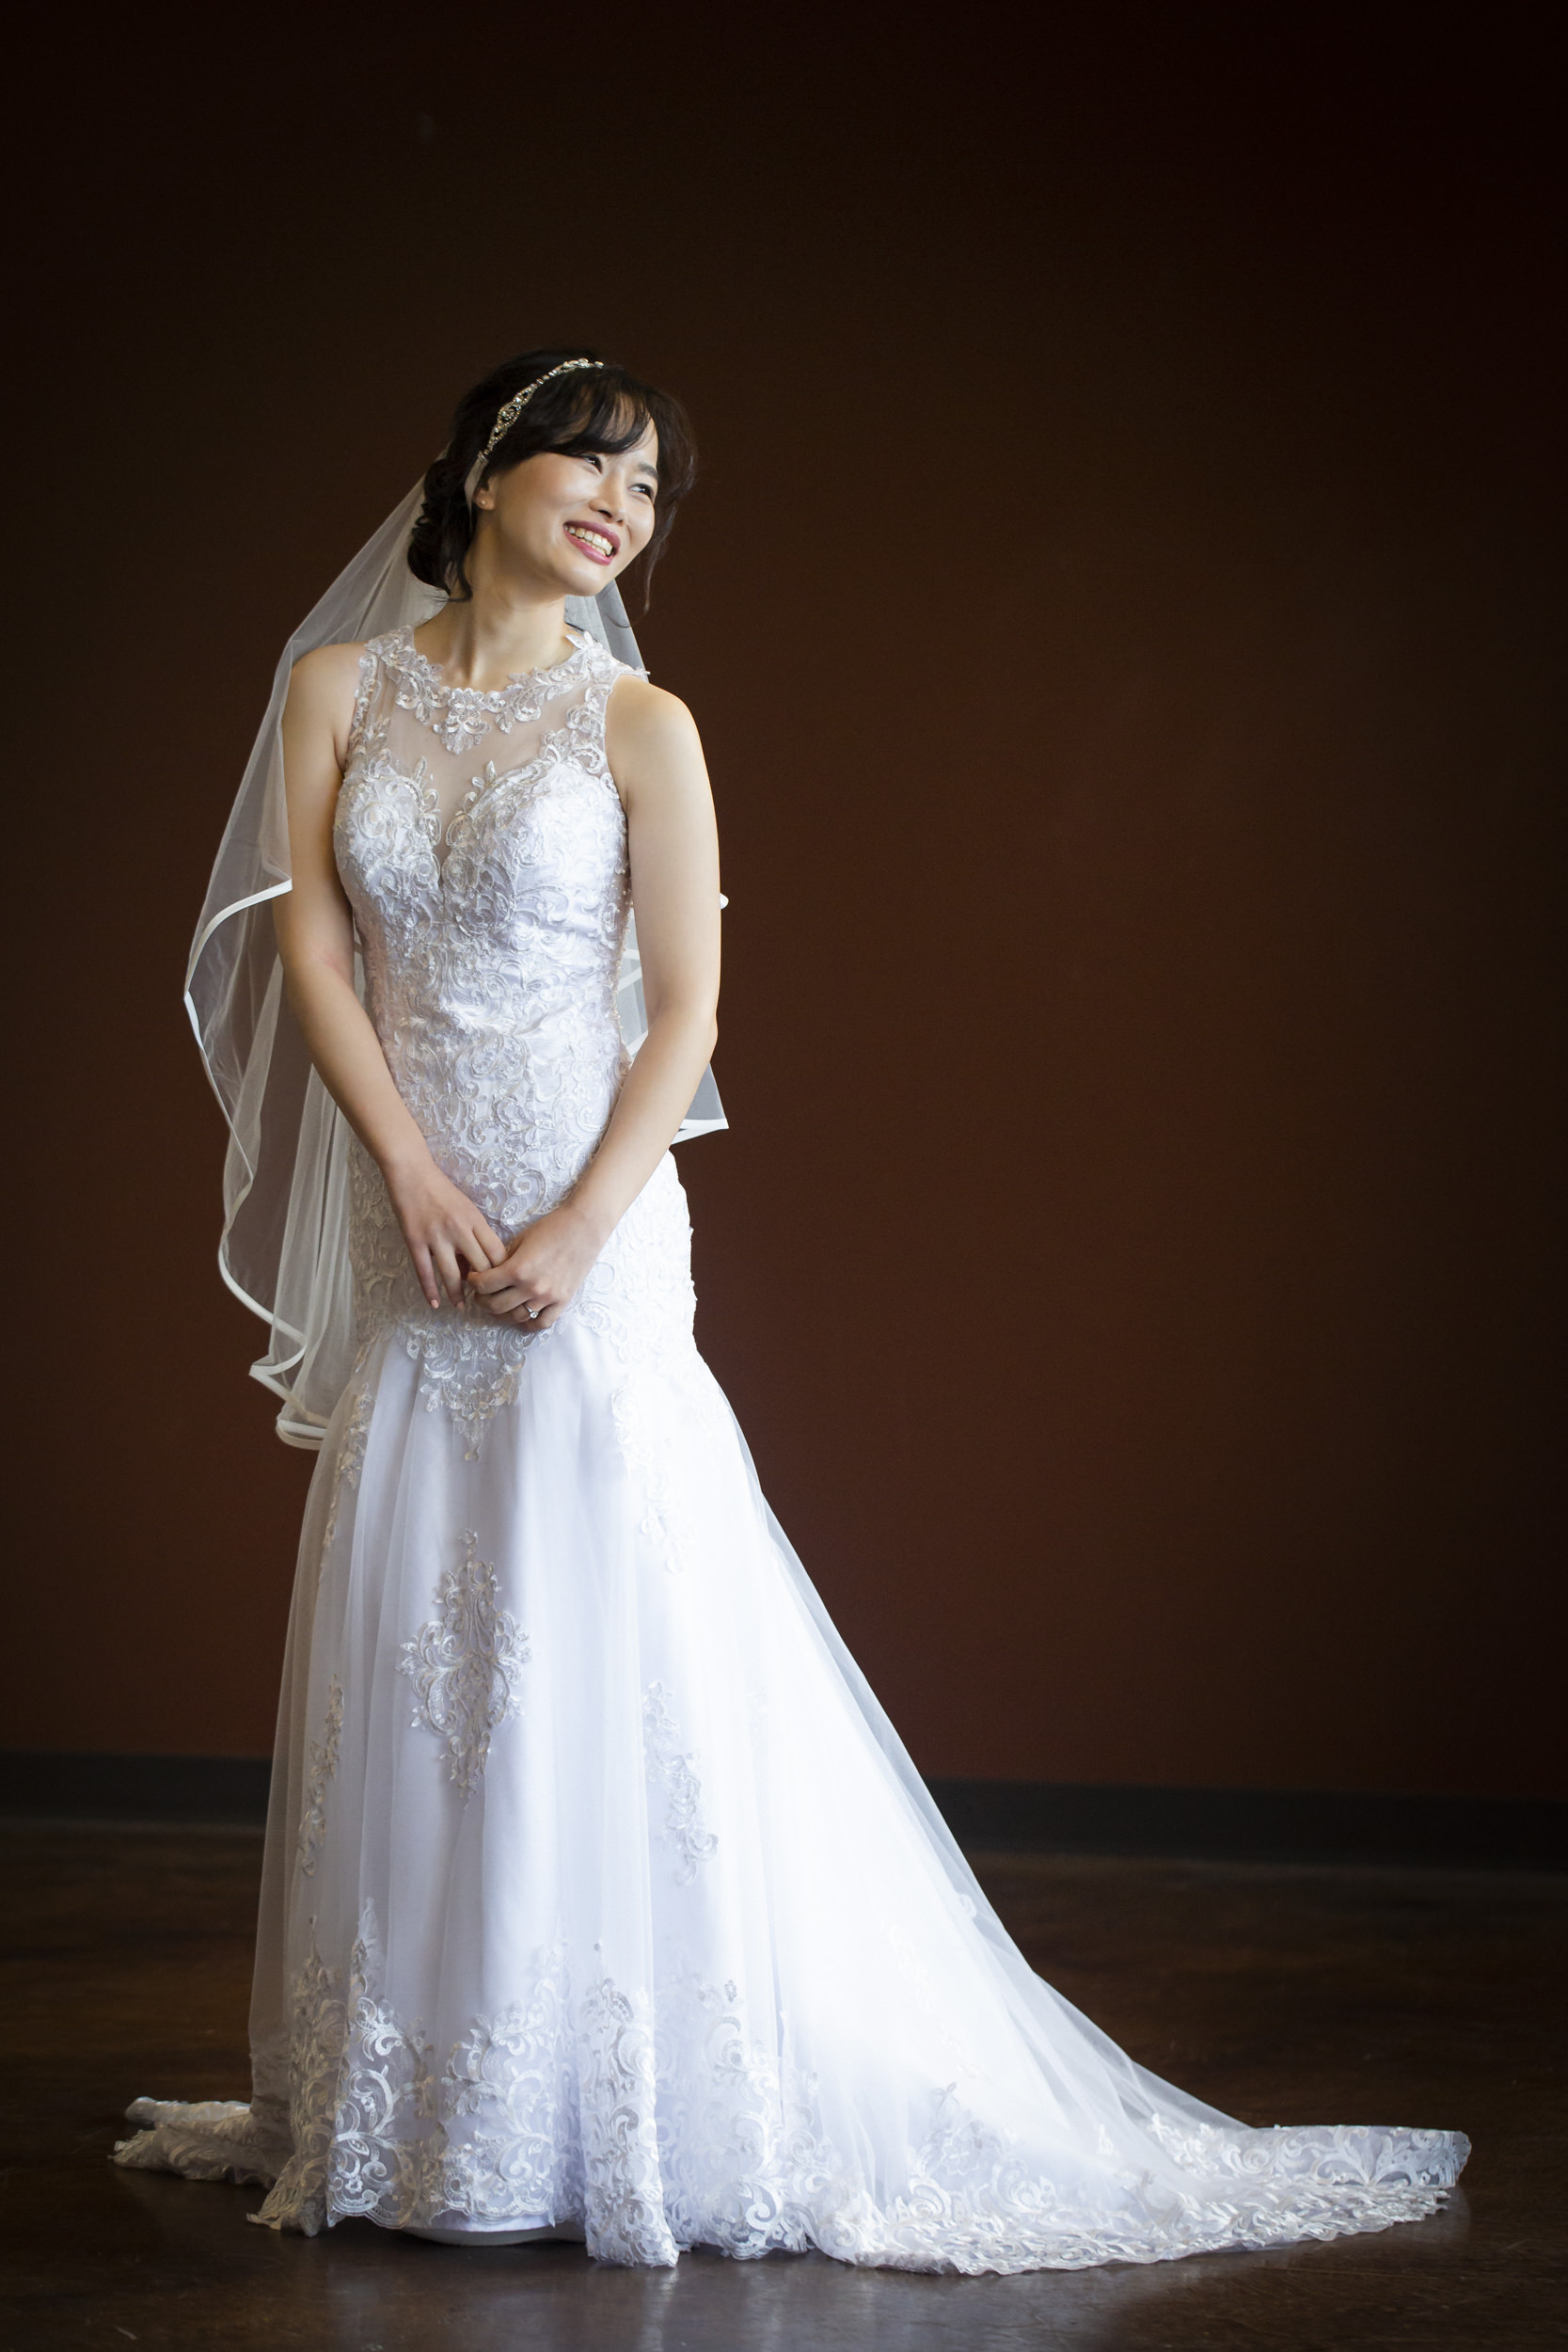 youngseon-bridal-wedding-portrait-2.jpg